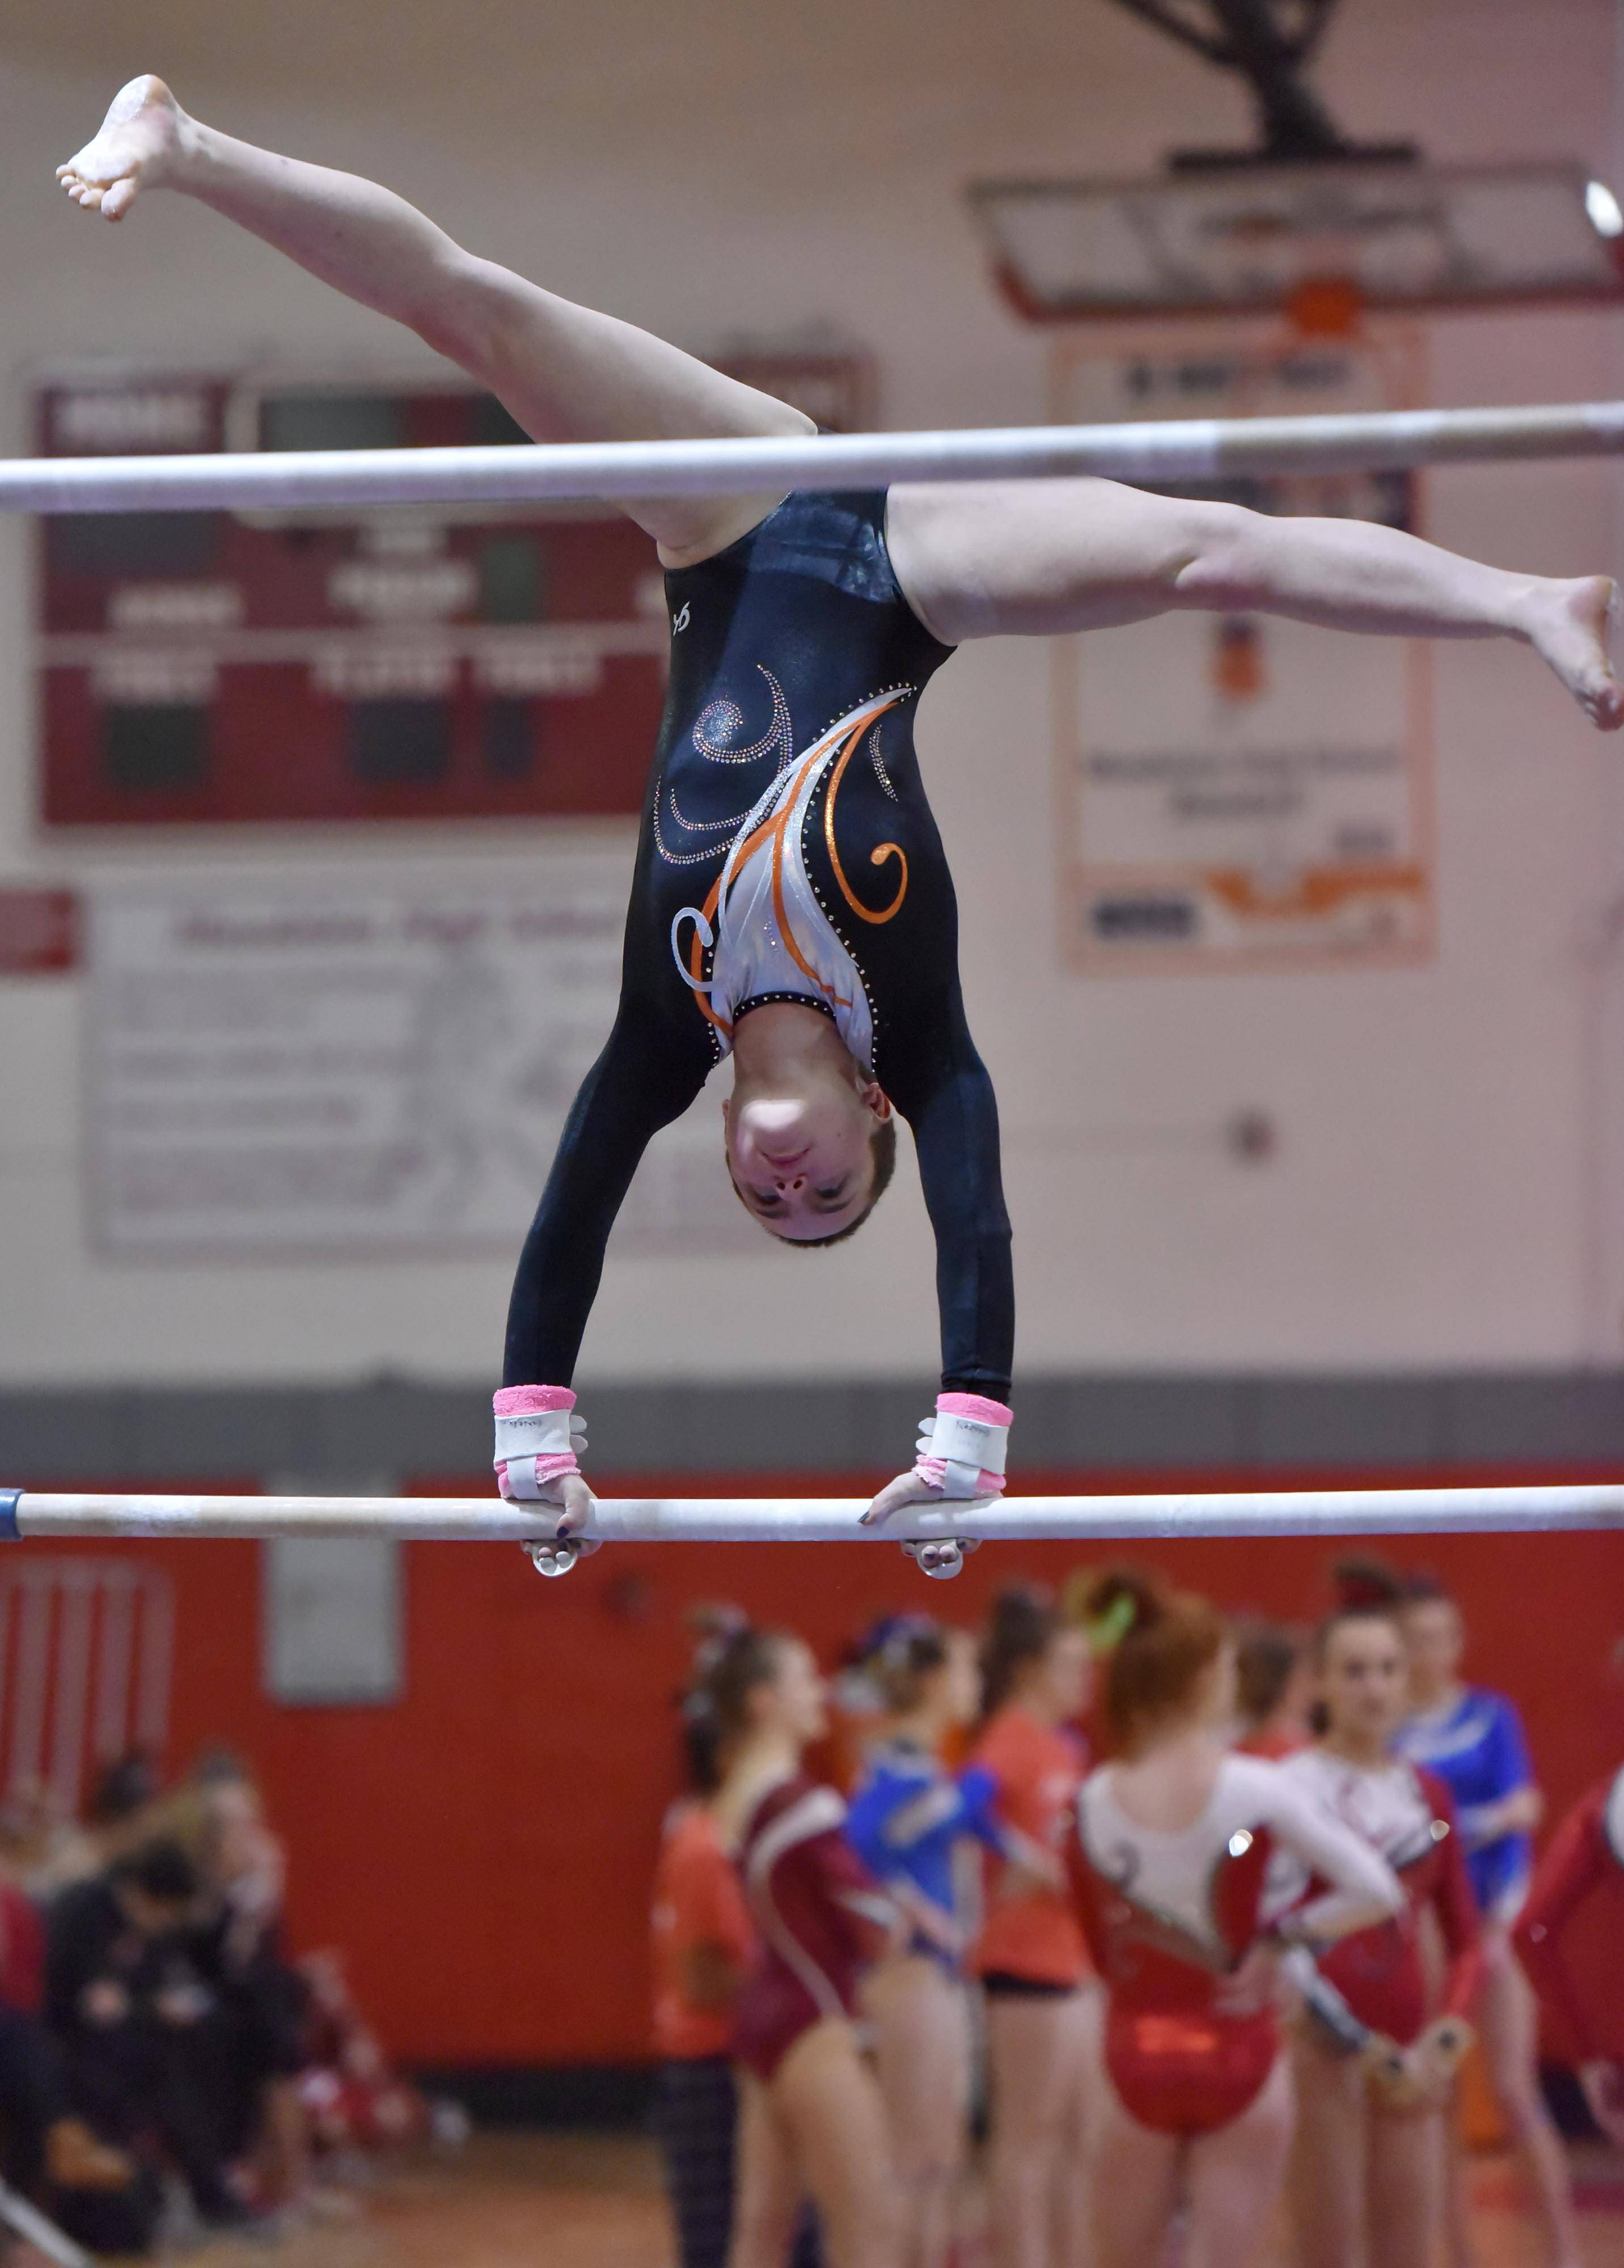 Libertyville's Liv Bertaud on the Uneven Bars at the Lake County girls gymnastics meet Saturday at Mundelein High School.